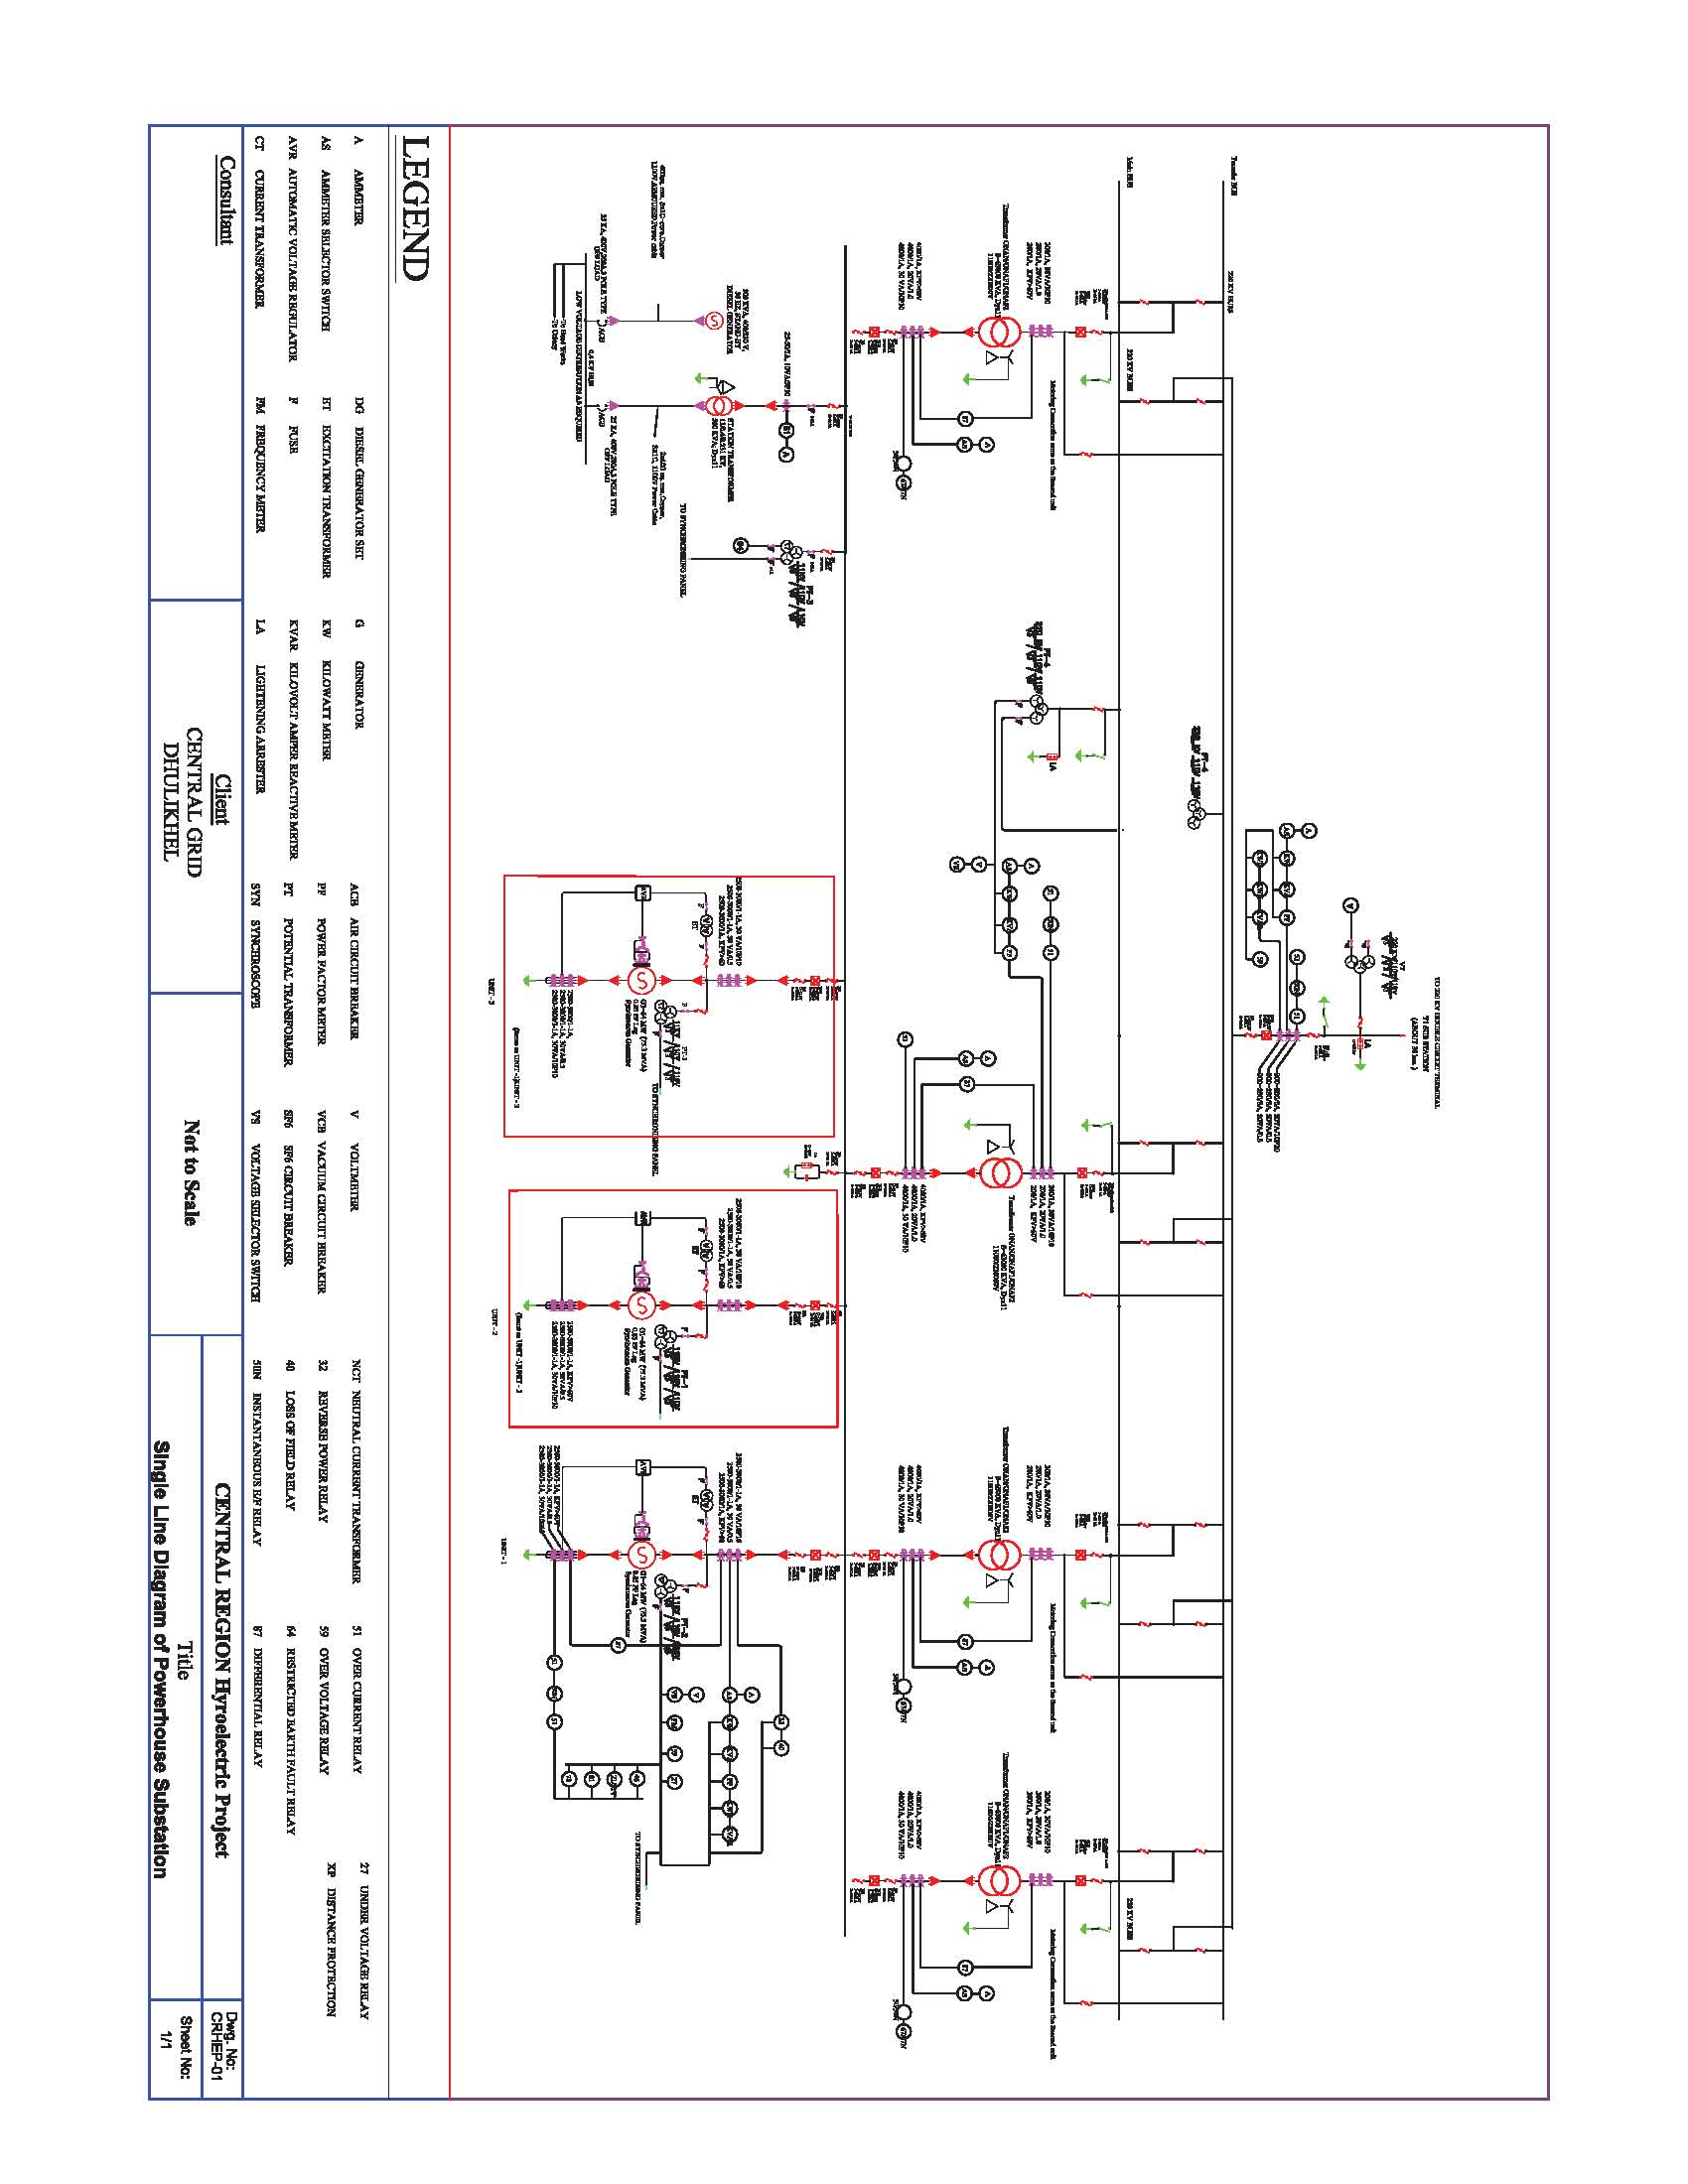 hight resolution of power plant one line diagram my wiring diagrampower plant one line diagram wiring diagram sample power